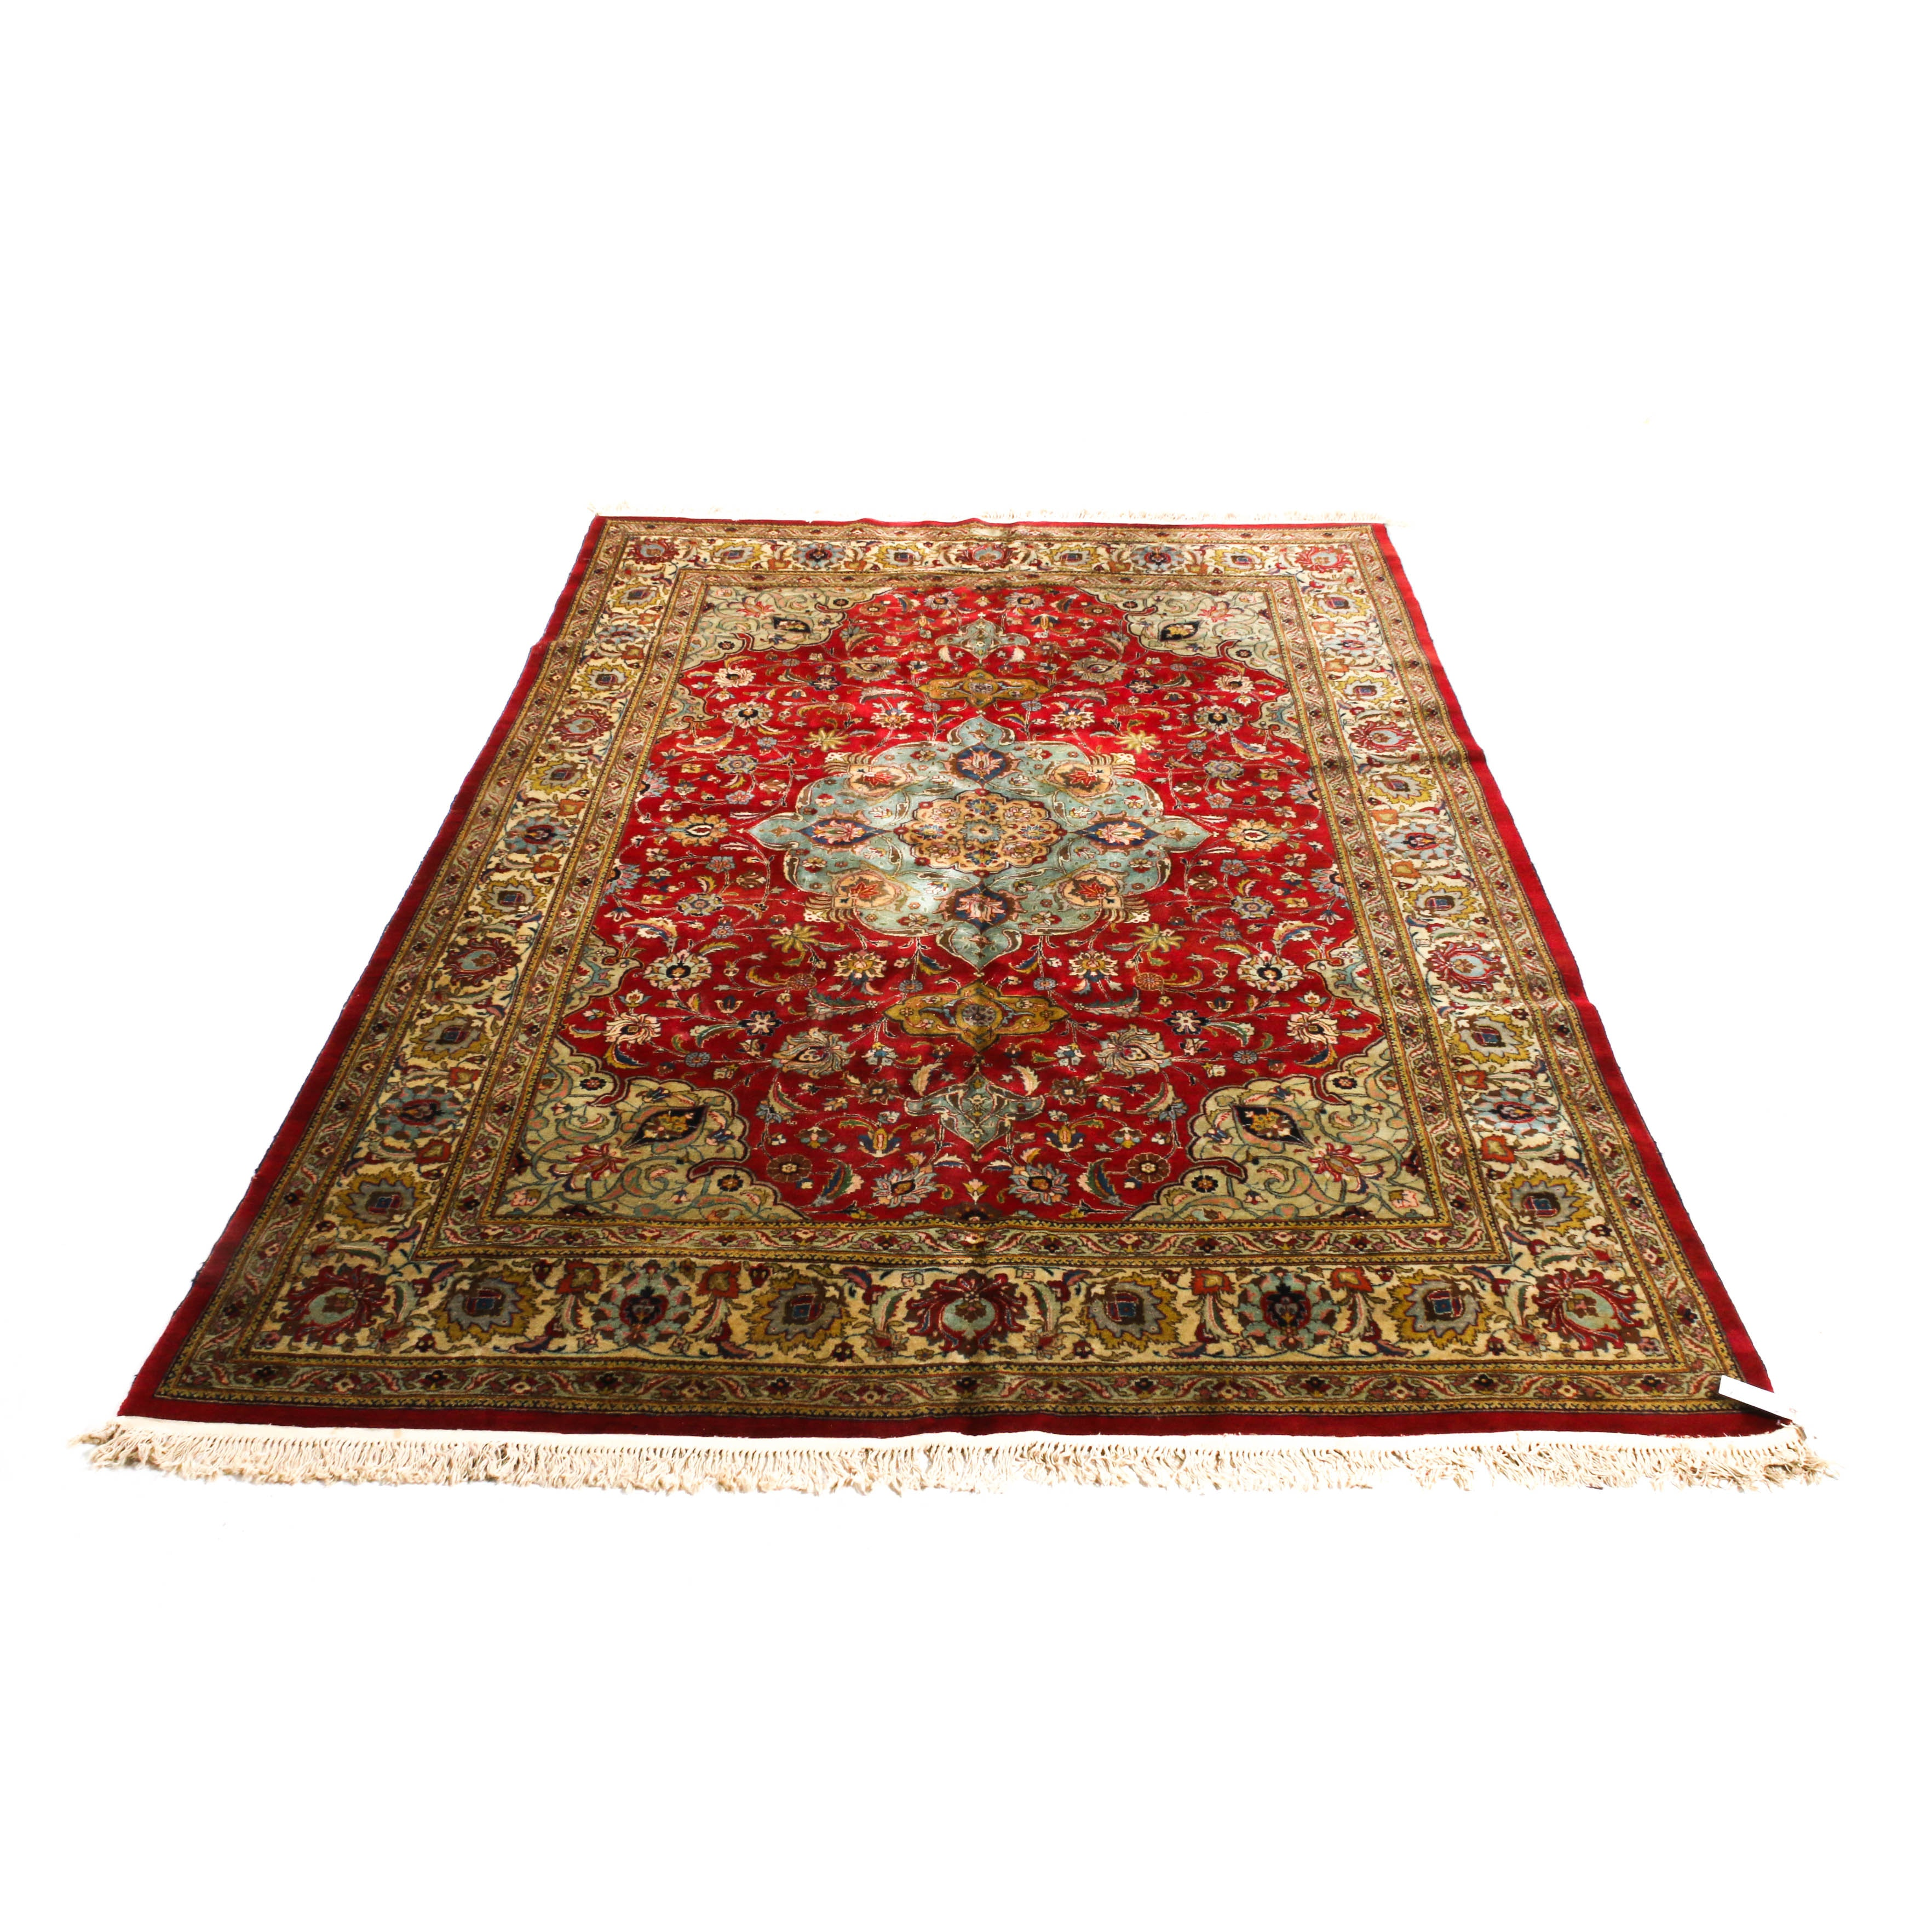 8'5 x 12'2 Hand-Knotted Persian Tabriz Room Size Wool Rug, Circa 1960